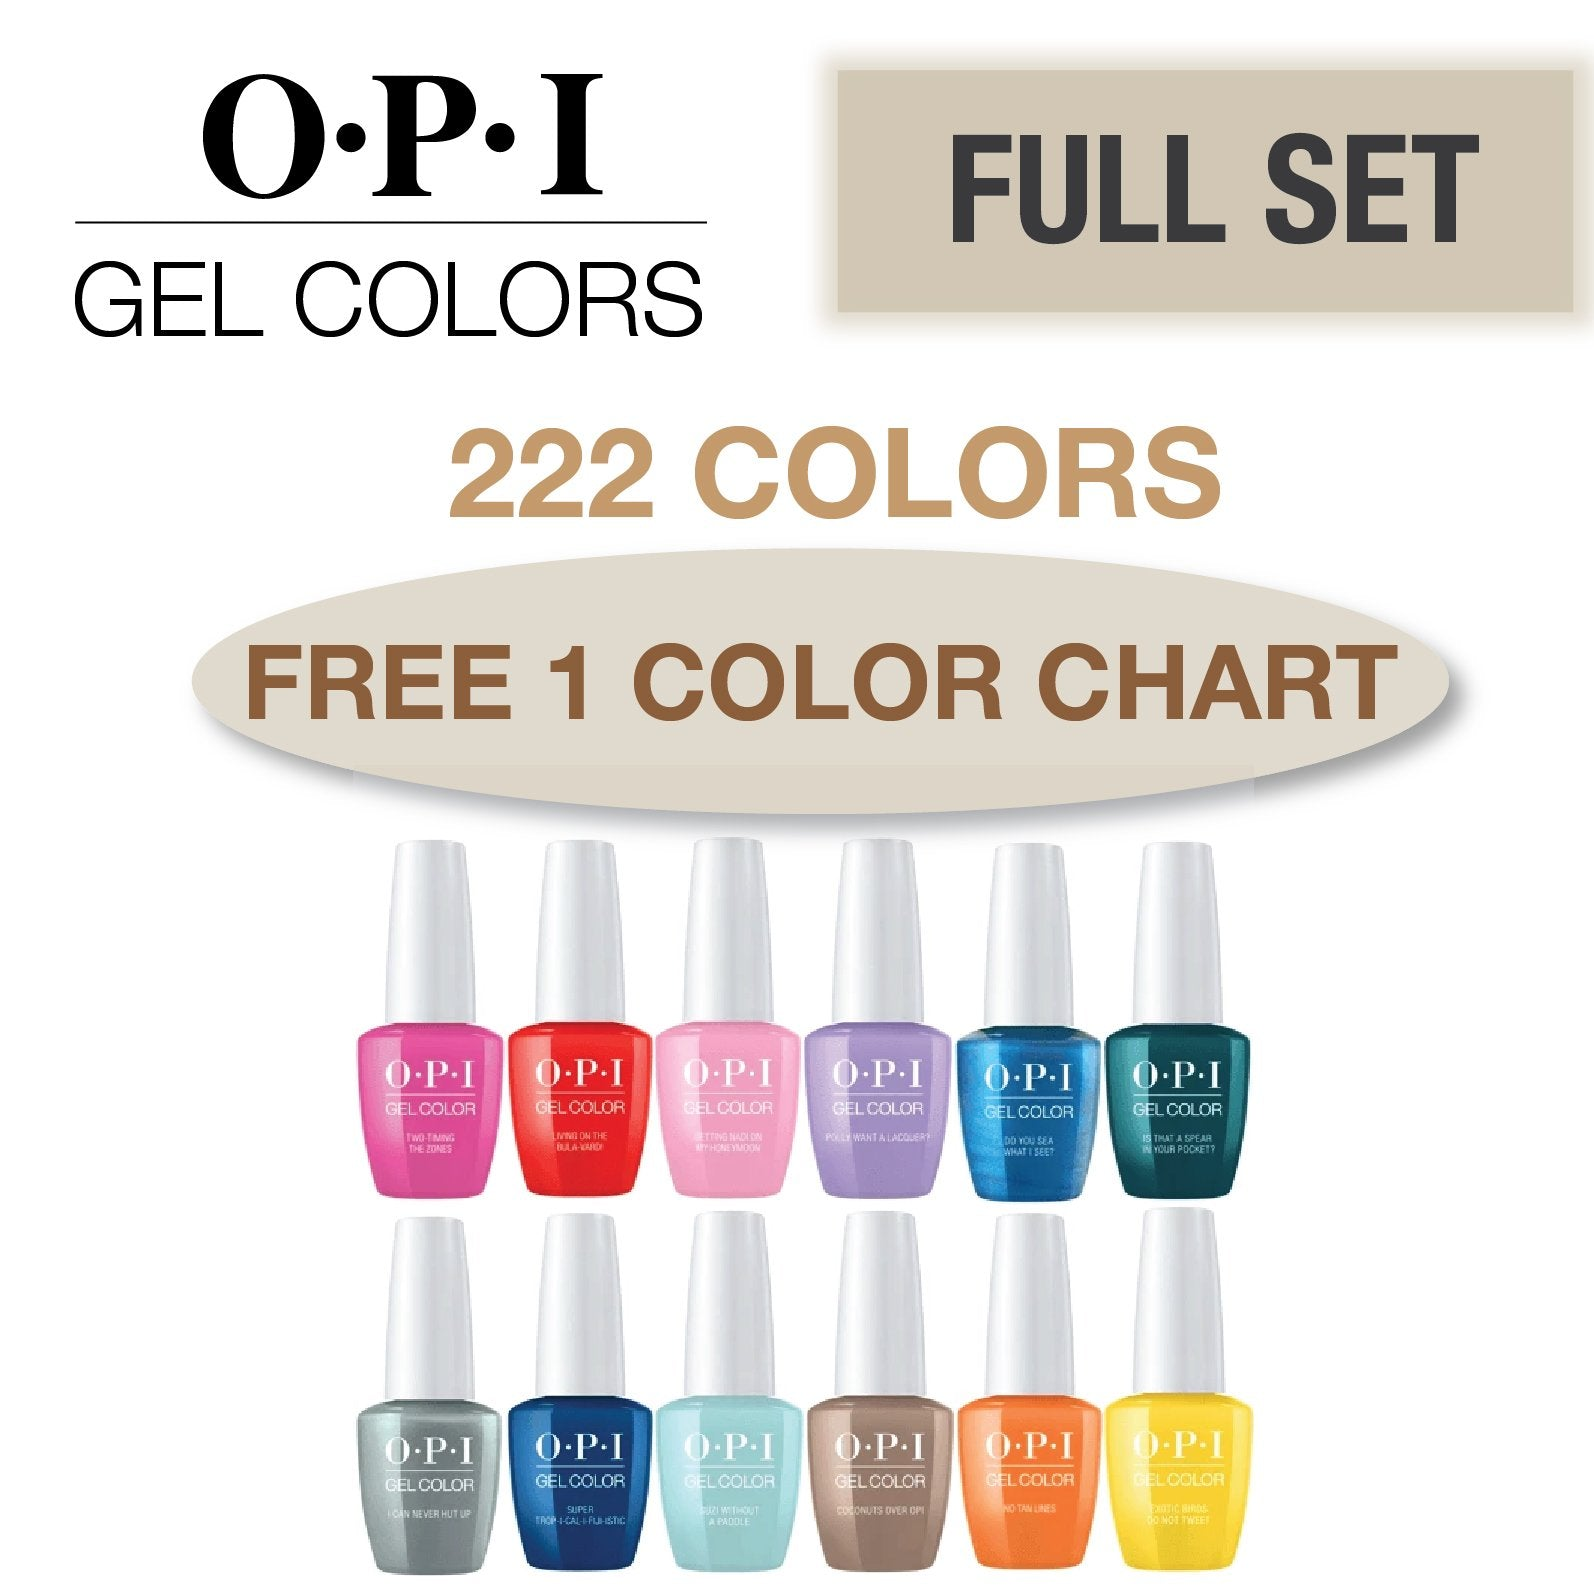 OPI Gel Colors Full Set 222 Colors